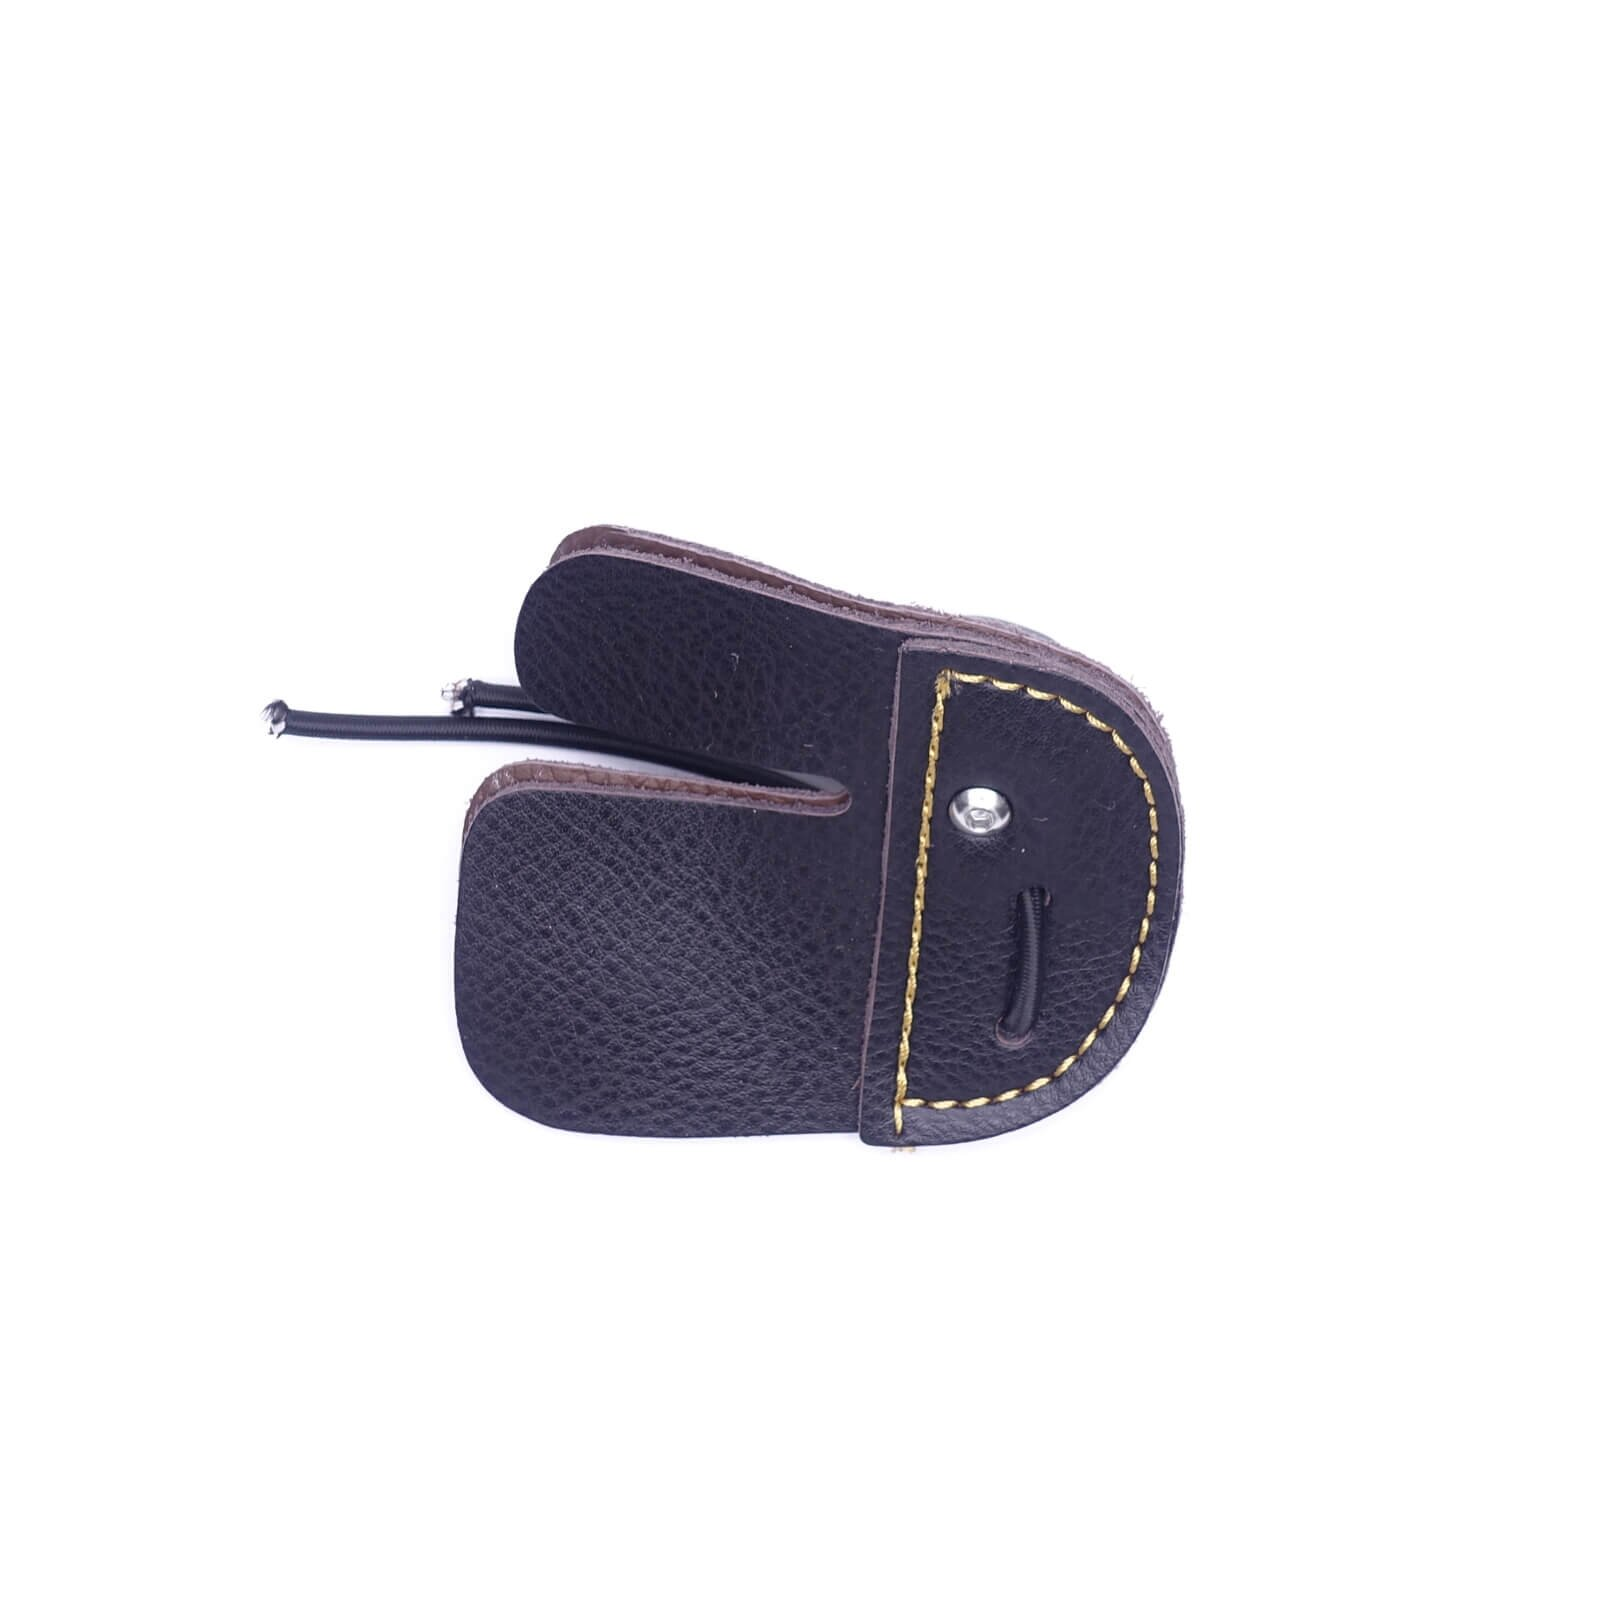 Mandarin Duck Recurve Bow Finger Tab Leather Brown Hunting Guard Protective Gear by Mandarin Duck